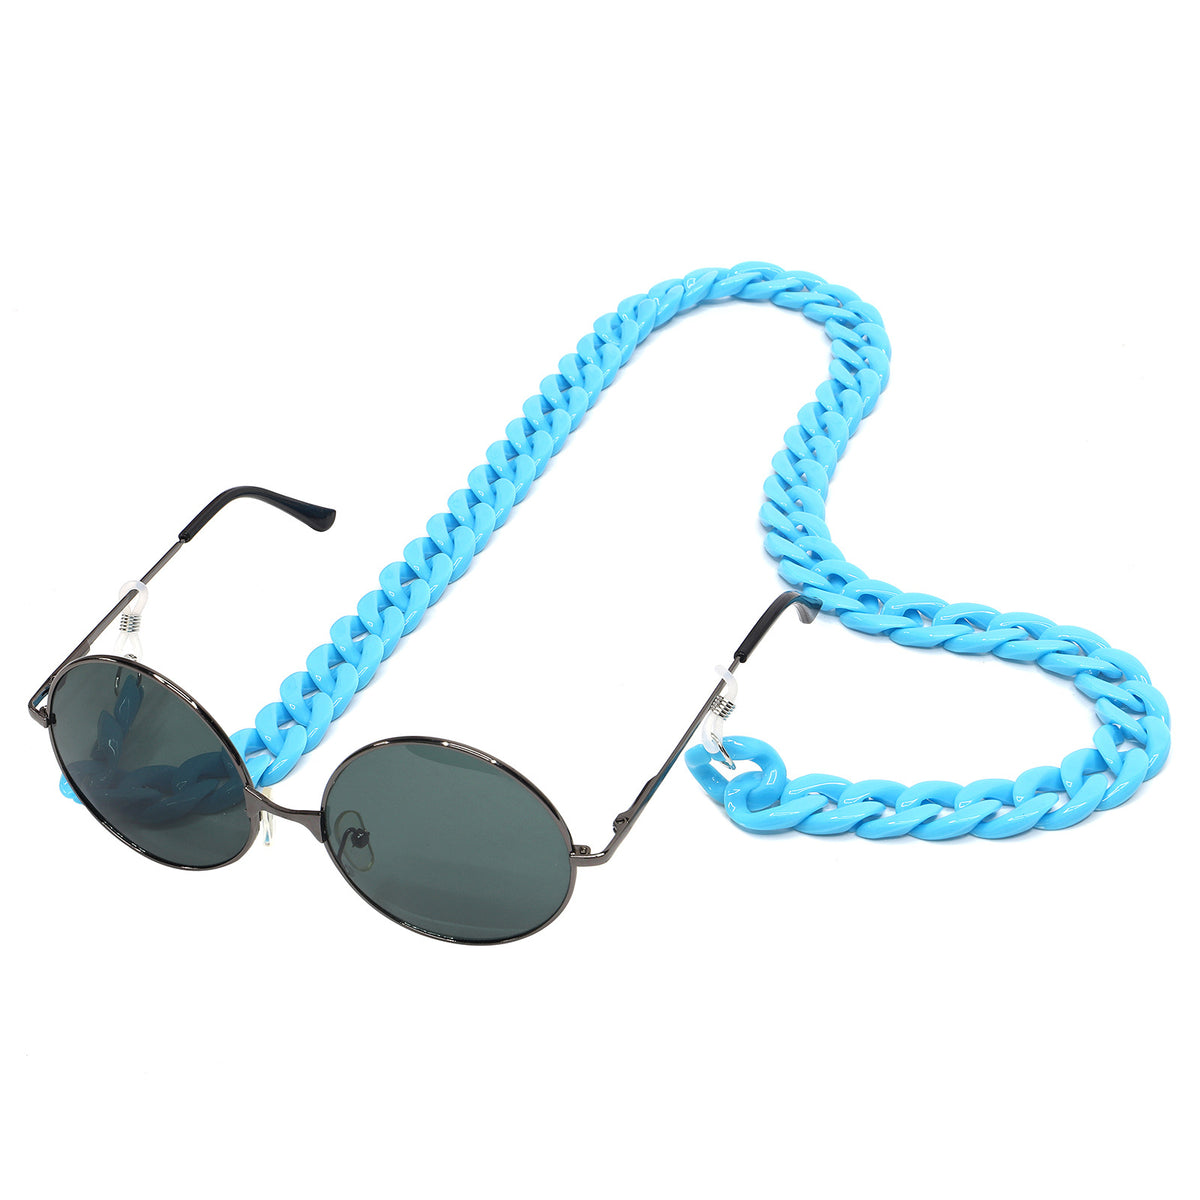 Sky Blue Sunnies Chain